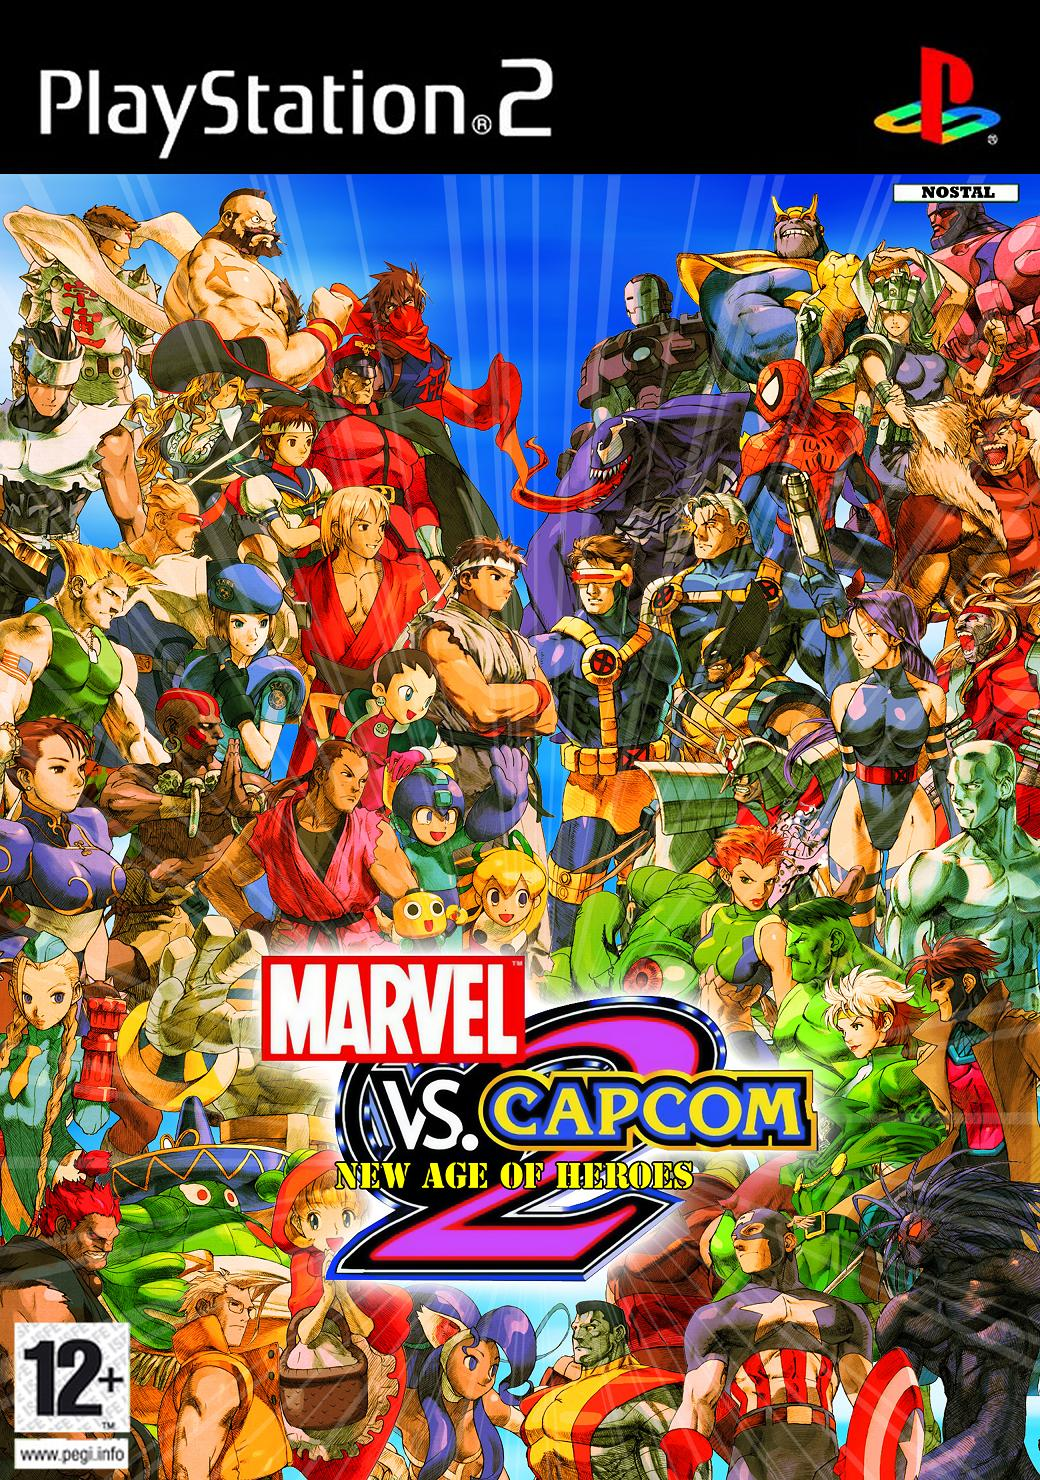 Marvel Vs Capcom 2 Hacked Edition (USA) PS2 | Android X Fusion